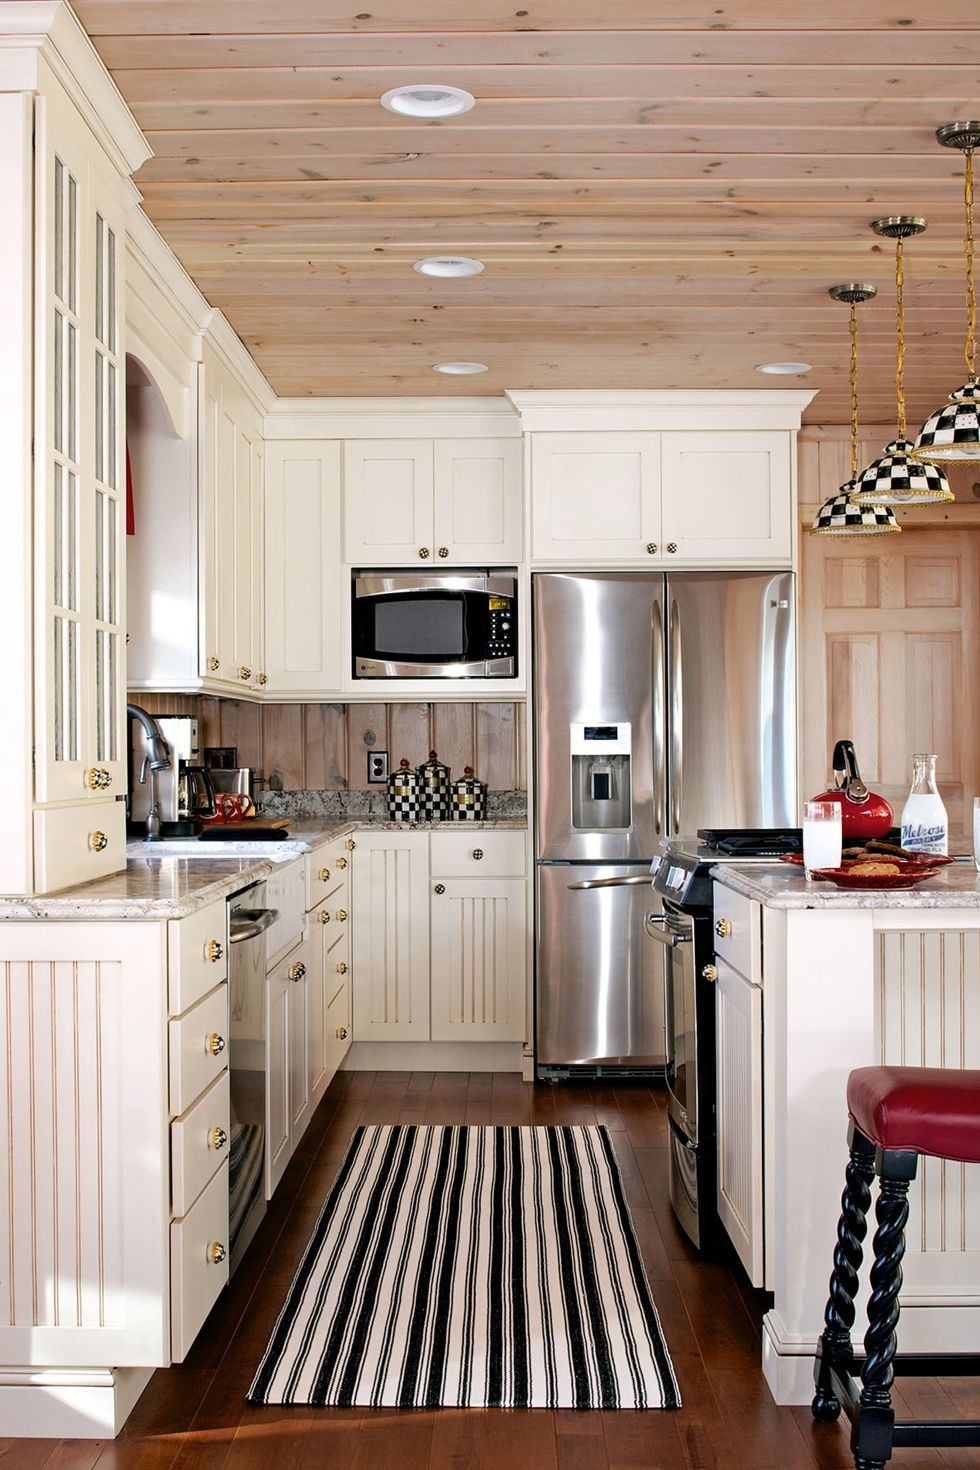 Cute & cozy kitchen Perfect design for the lake house